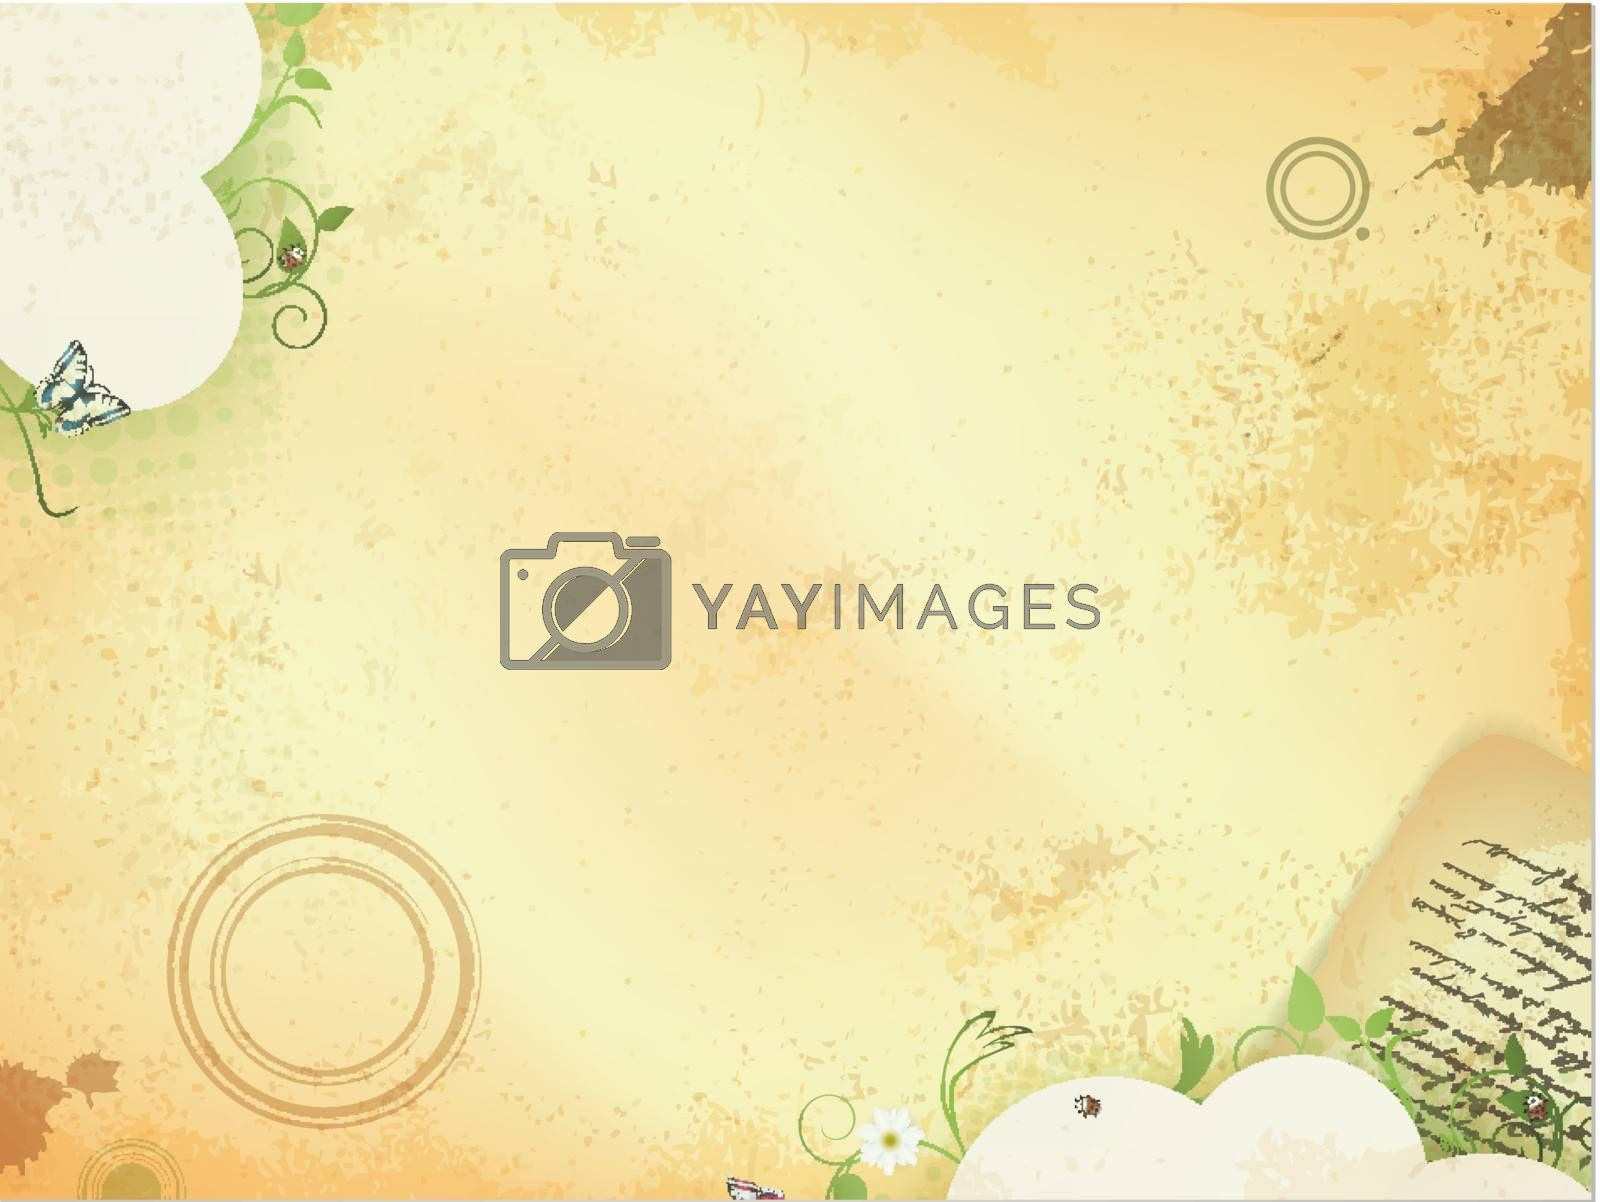 Royalty free image of Vintage background with green leaves and old letter by razvodovska